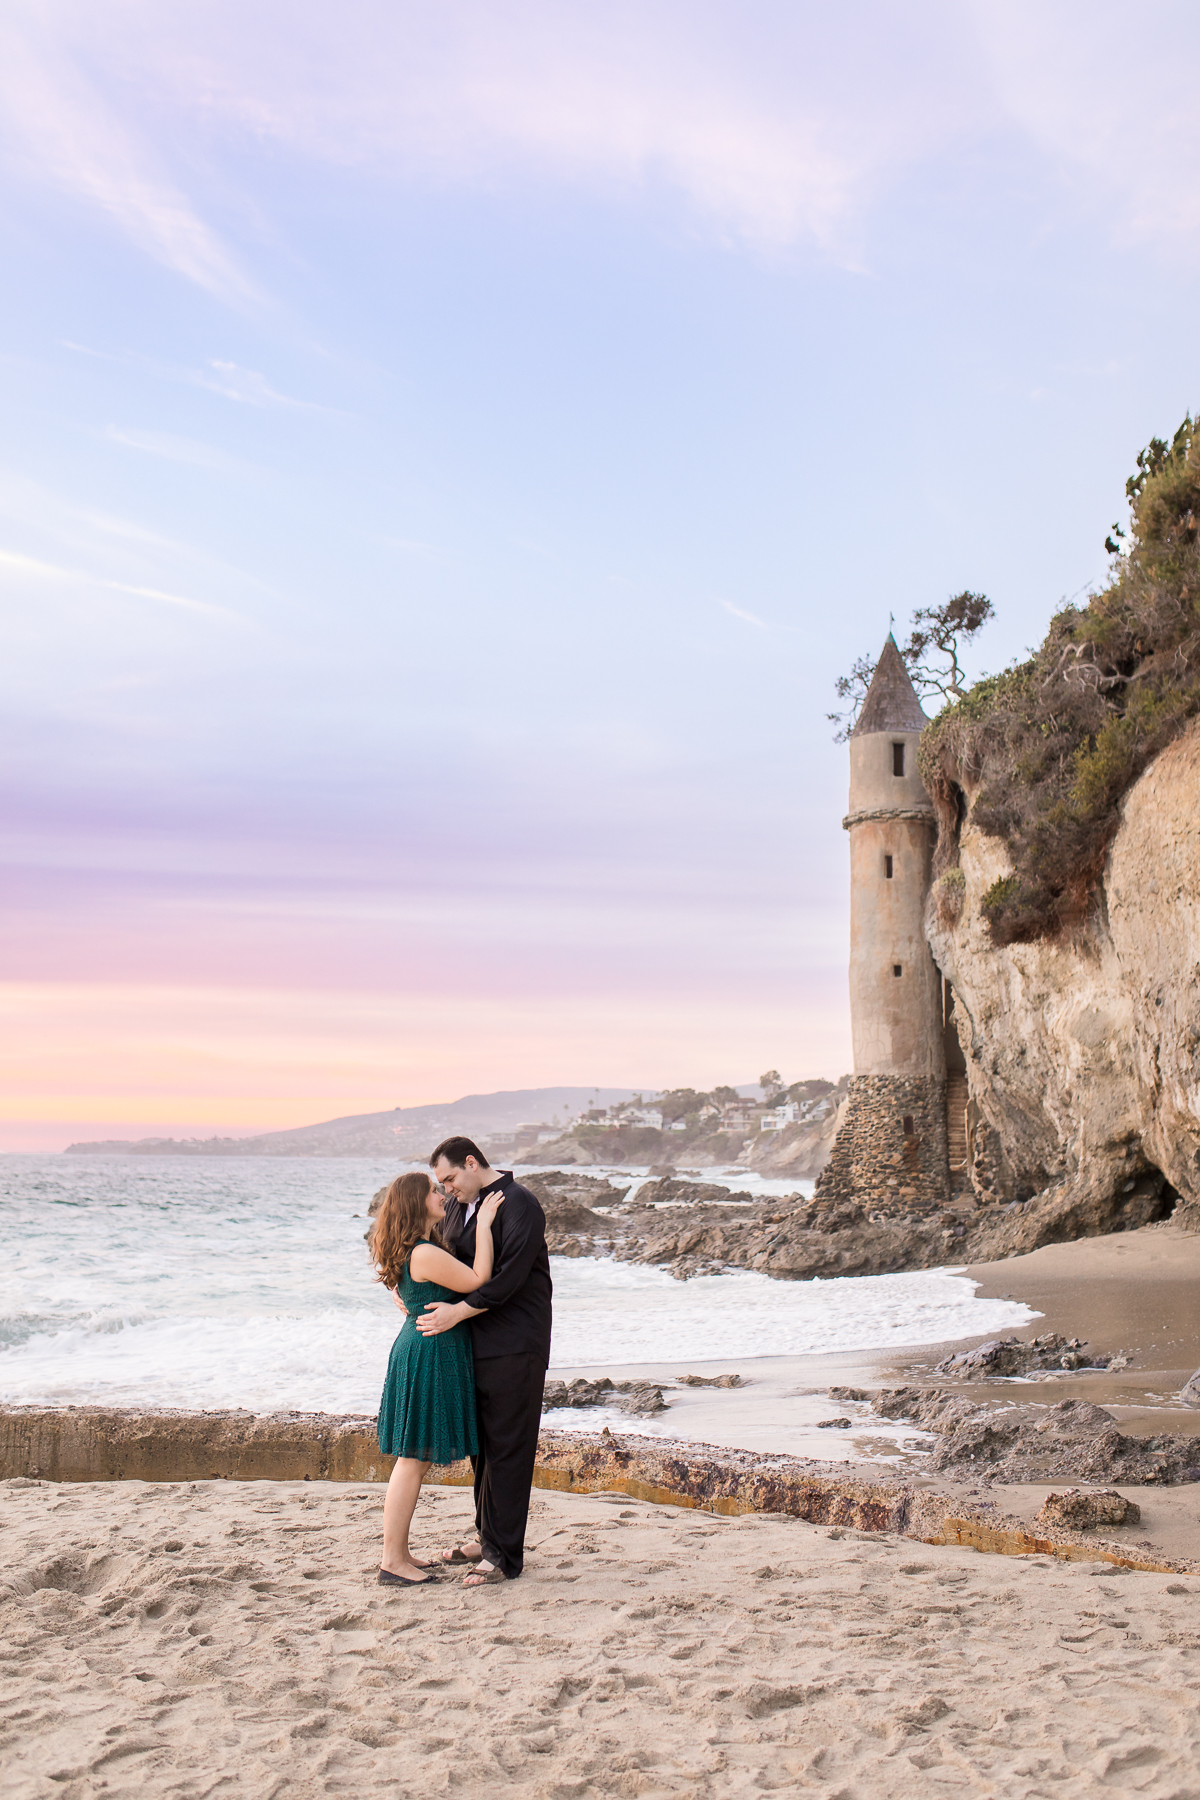 Beach Destination engagement session by Laramie based photographer, Megan Lee Photography